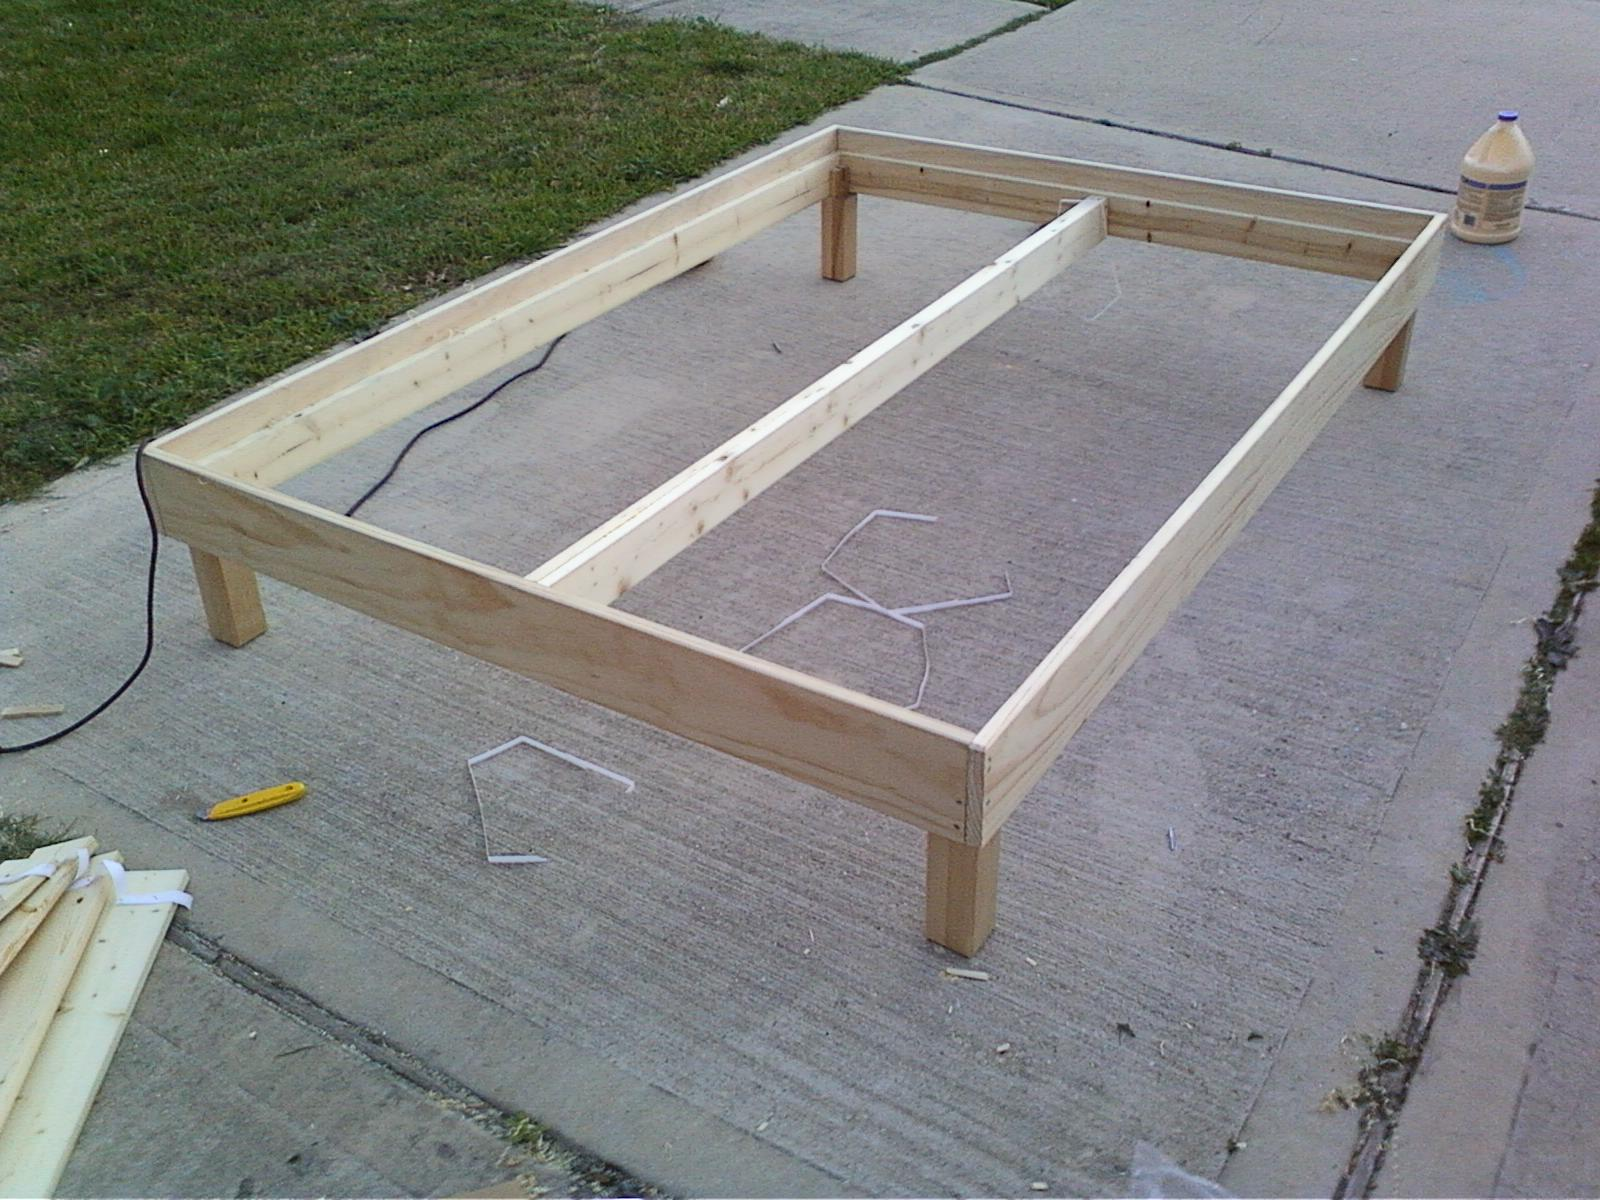 This week in the shop a bed frame woodshopcowboy Simple wood bed frame designs